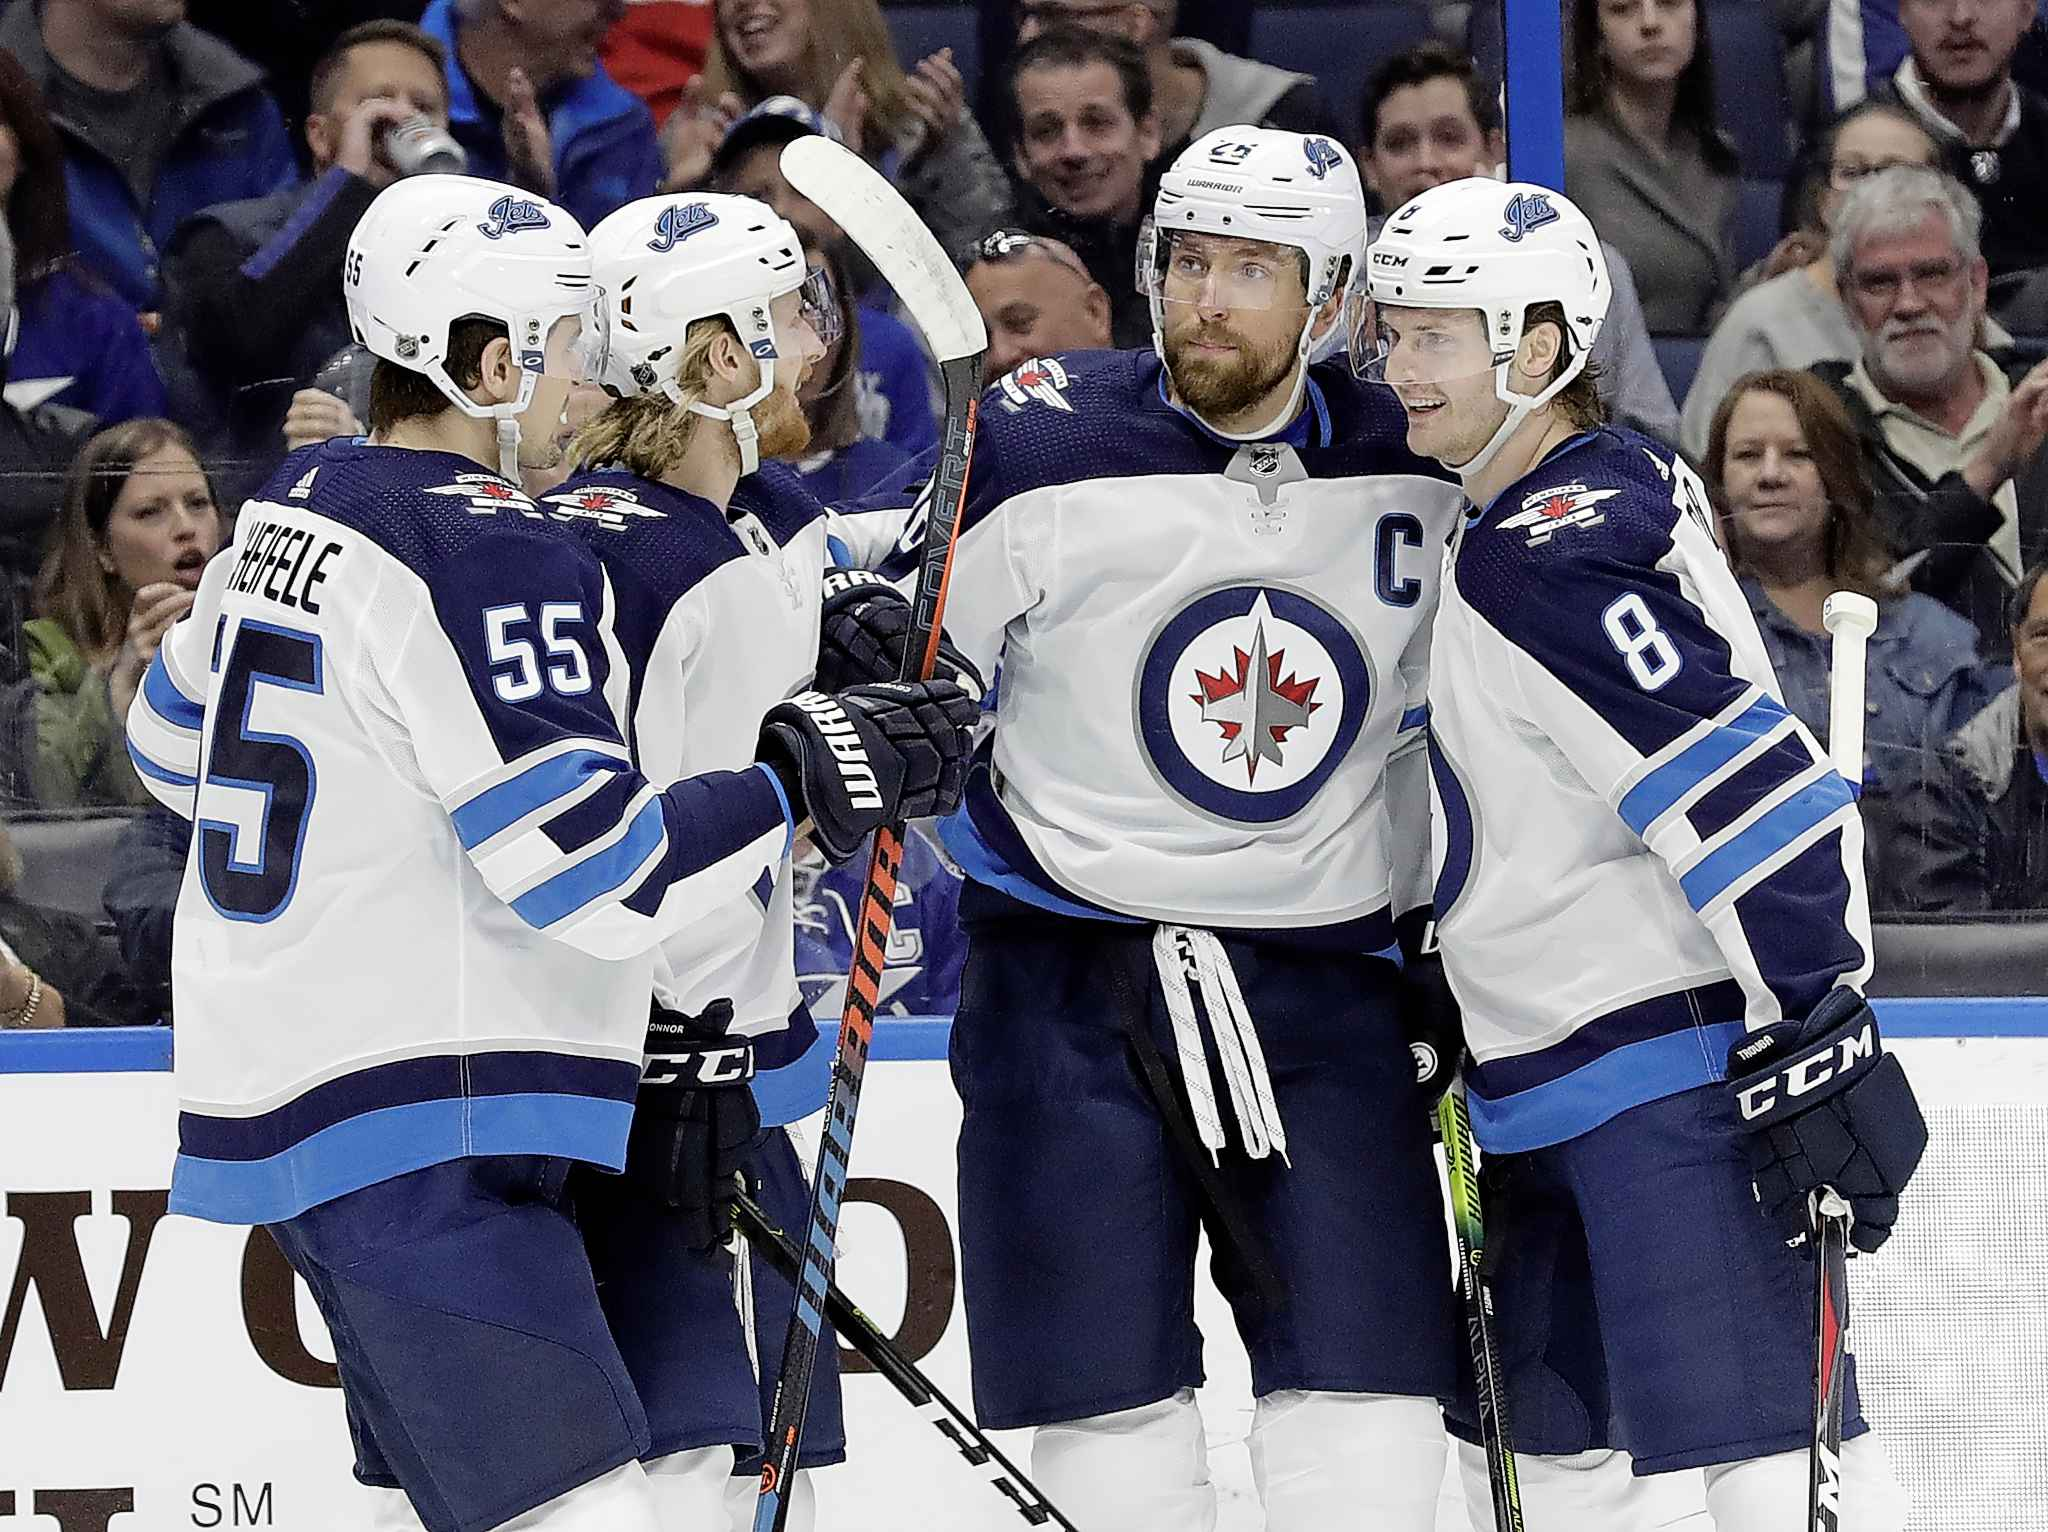 Winnipeg Jets right wing Blake Wheeler celebrates his goal against the Tampa Bay Lightning with teammates, including centre Mark Scheifele and defenceman Jacob Trouba, during the first period Tuesday.